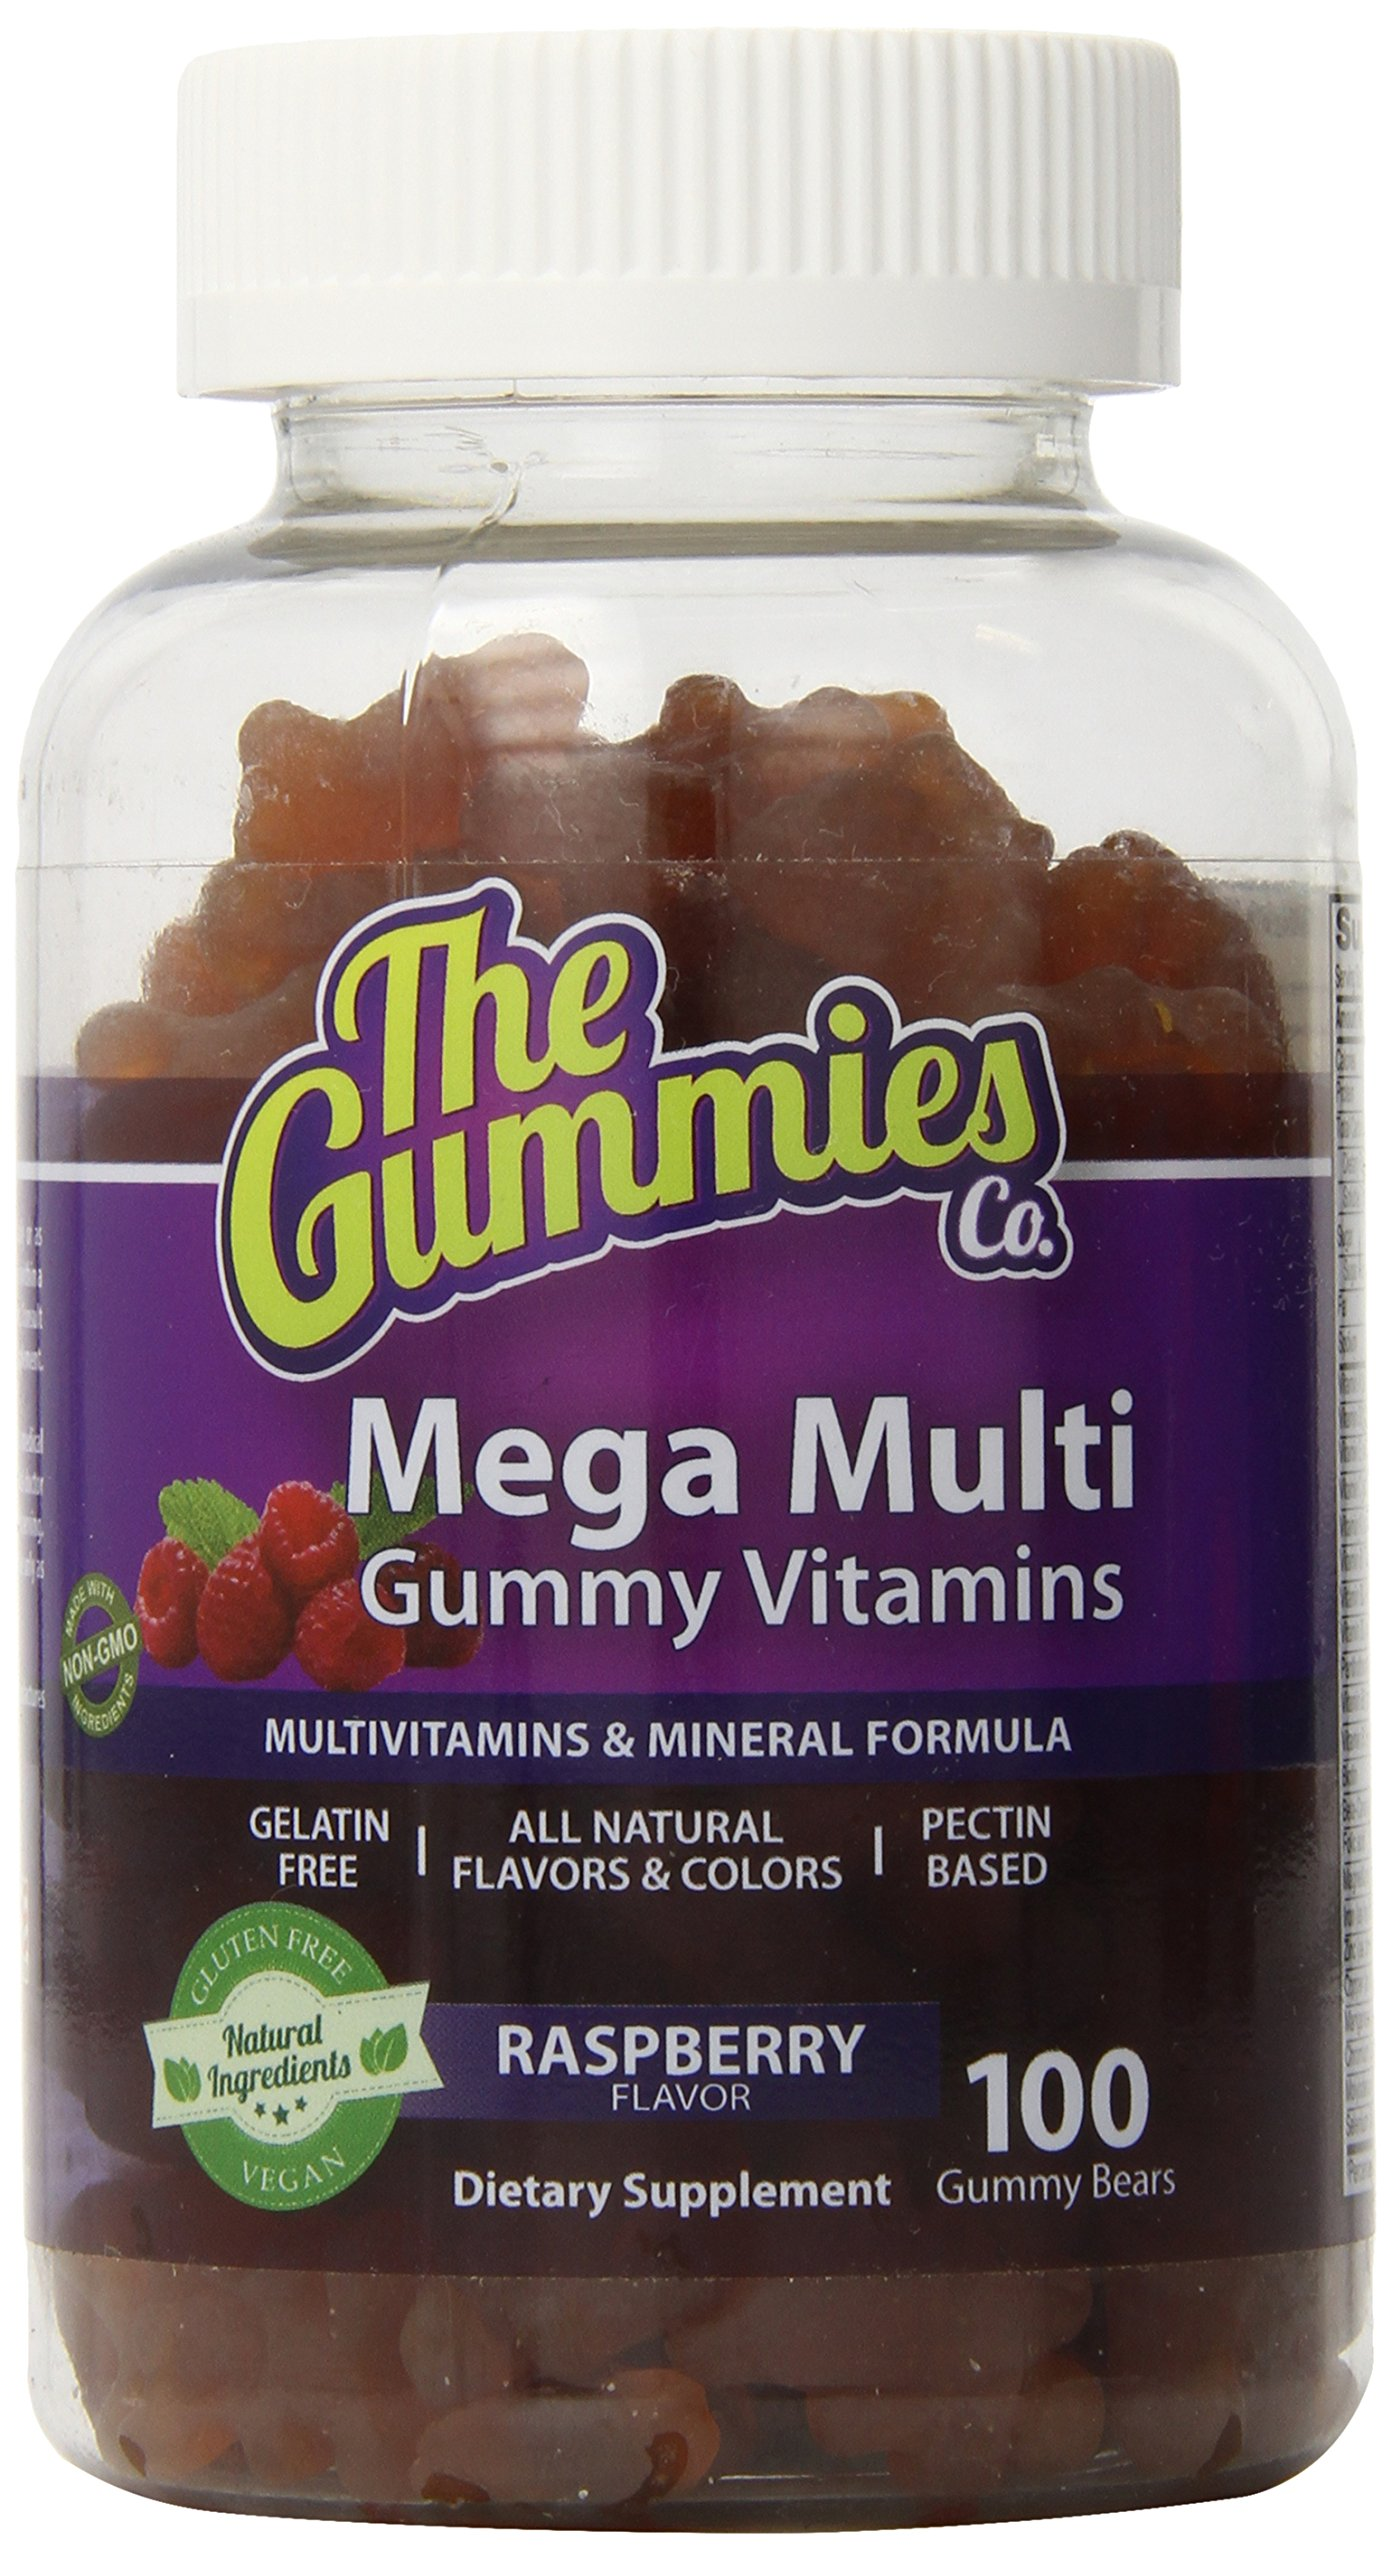 The Gummies Co Mega Multi Complete Gummy Vitamin and Mineral Formula, Raspberry, 100 Count